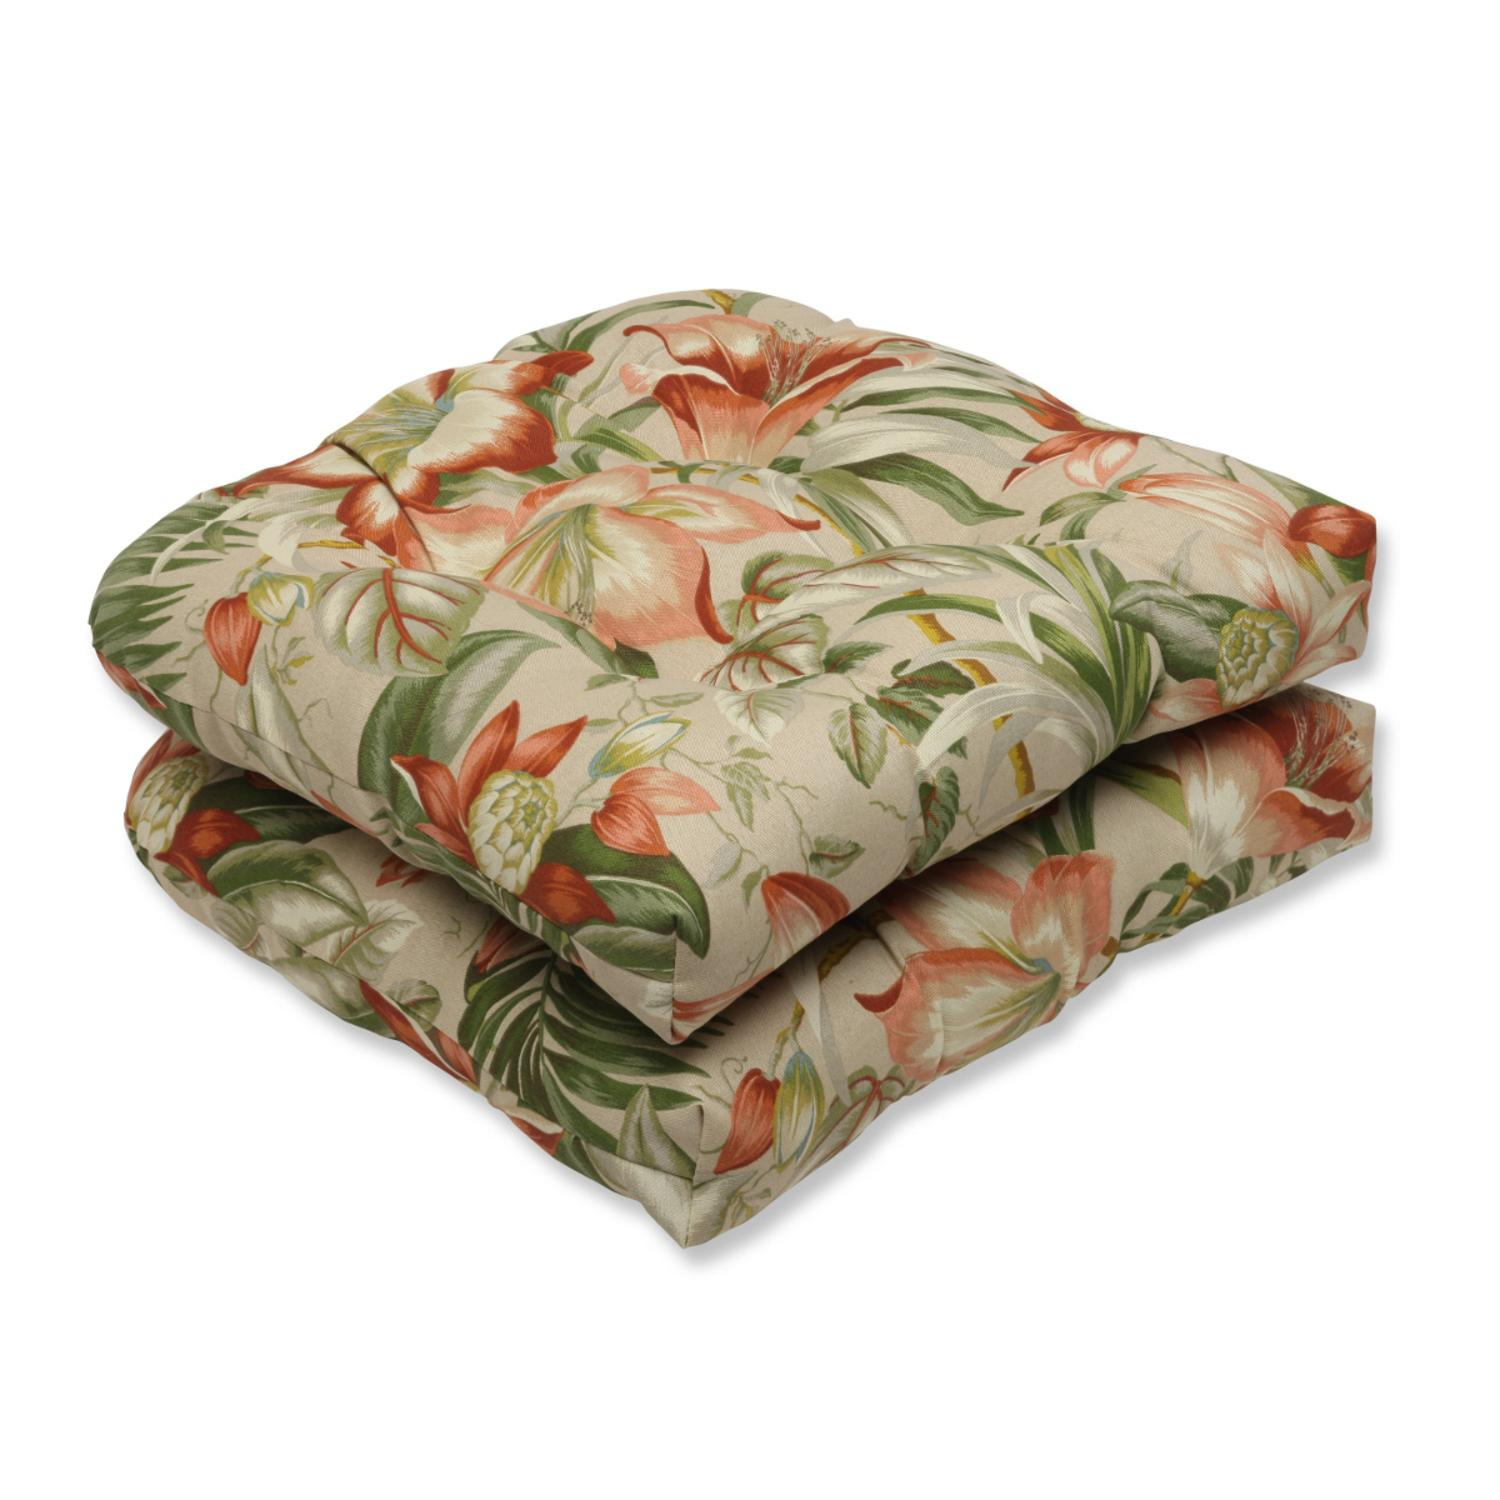 Set of 2 Green, Tan and Coral Tropical Garden Decorative Outdoor Patio Wicker Chair Seat Cushions 19